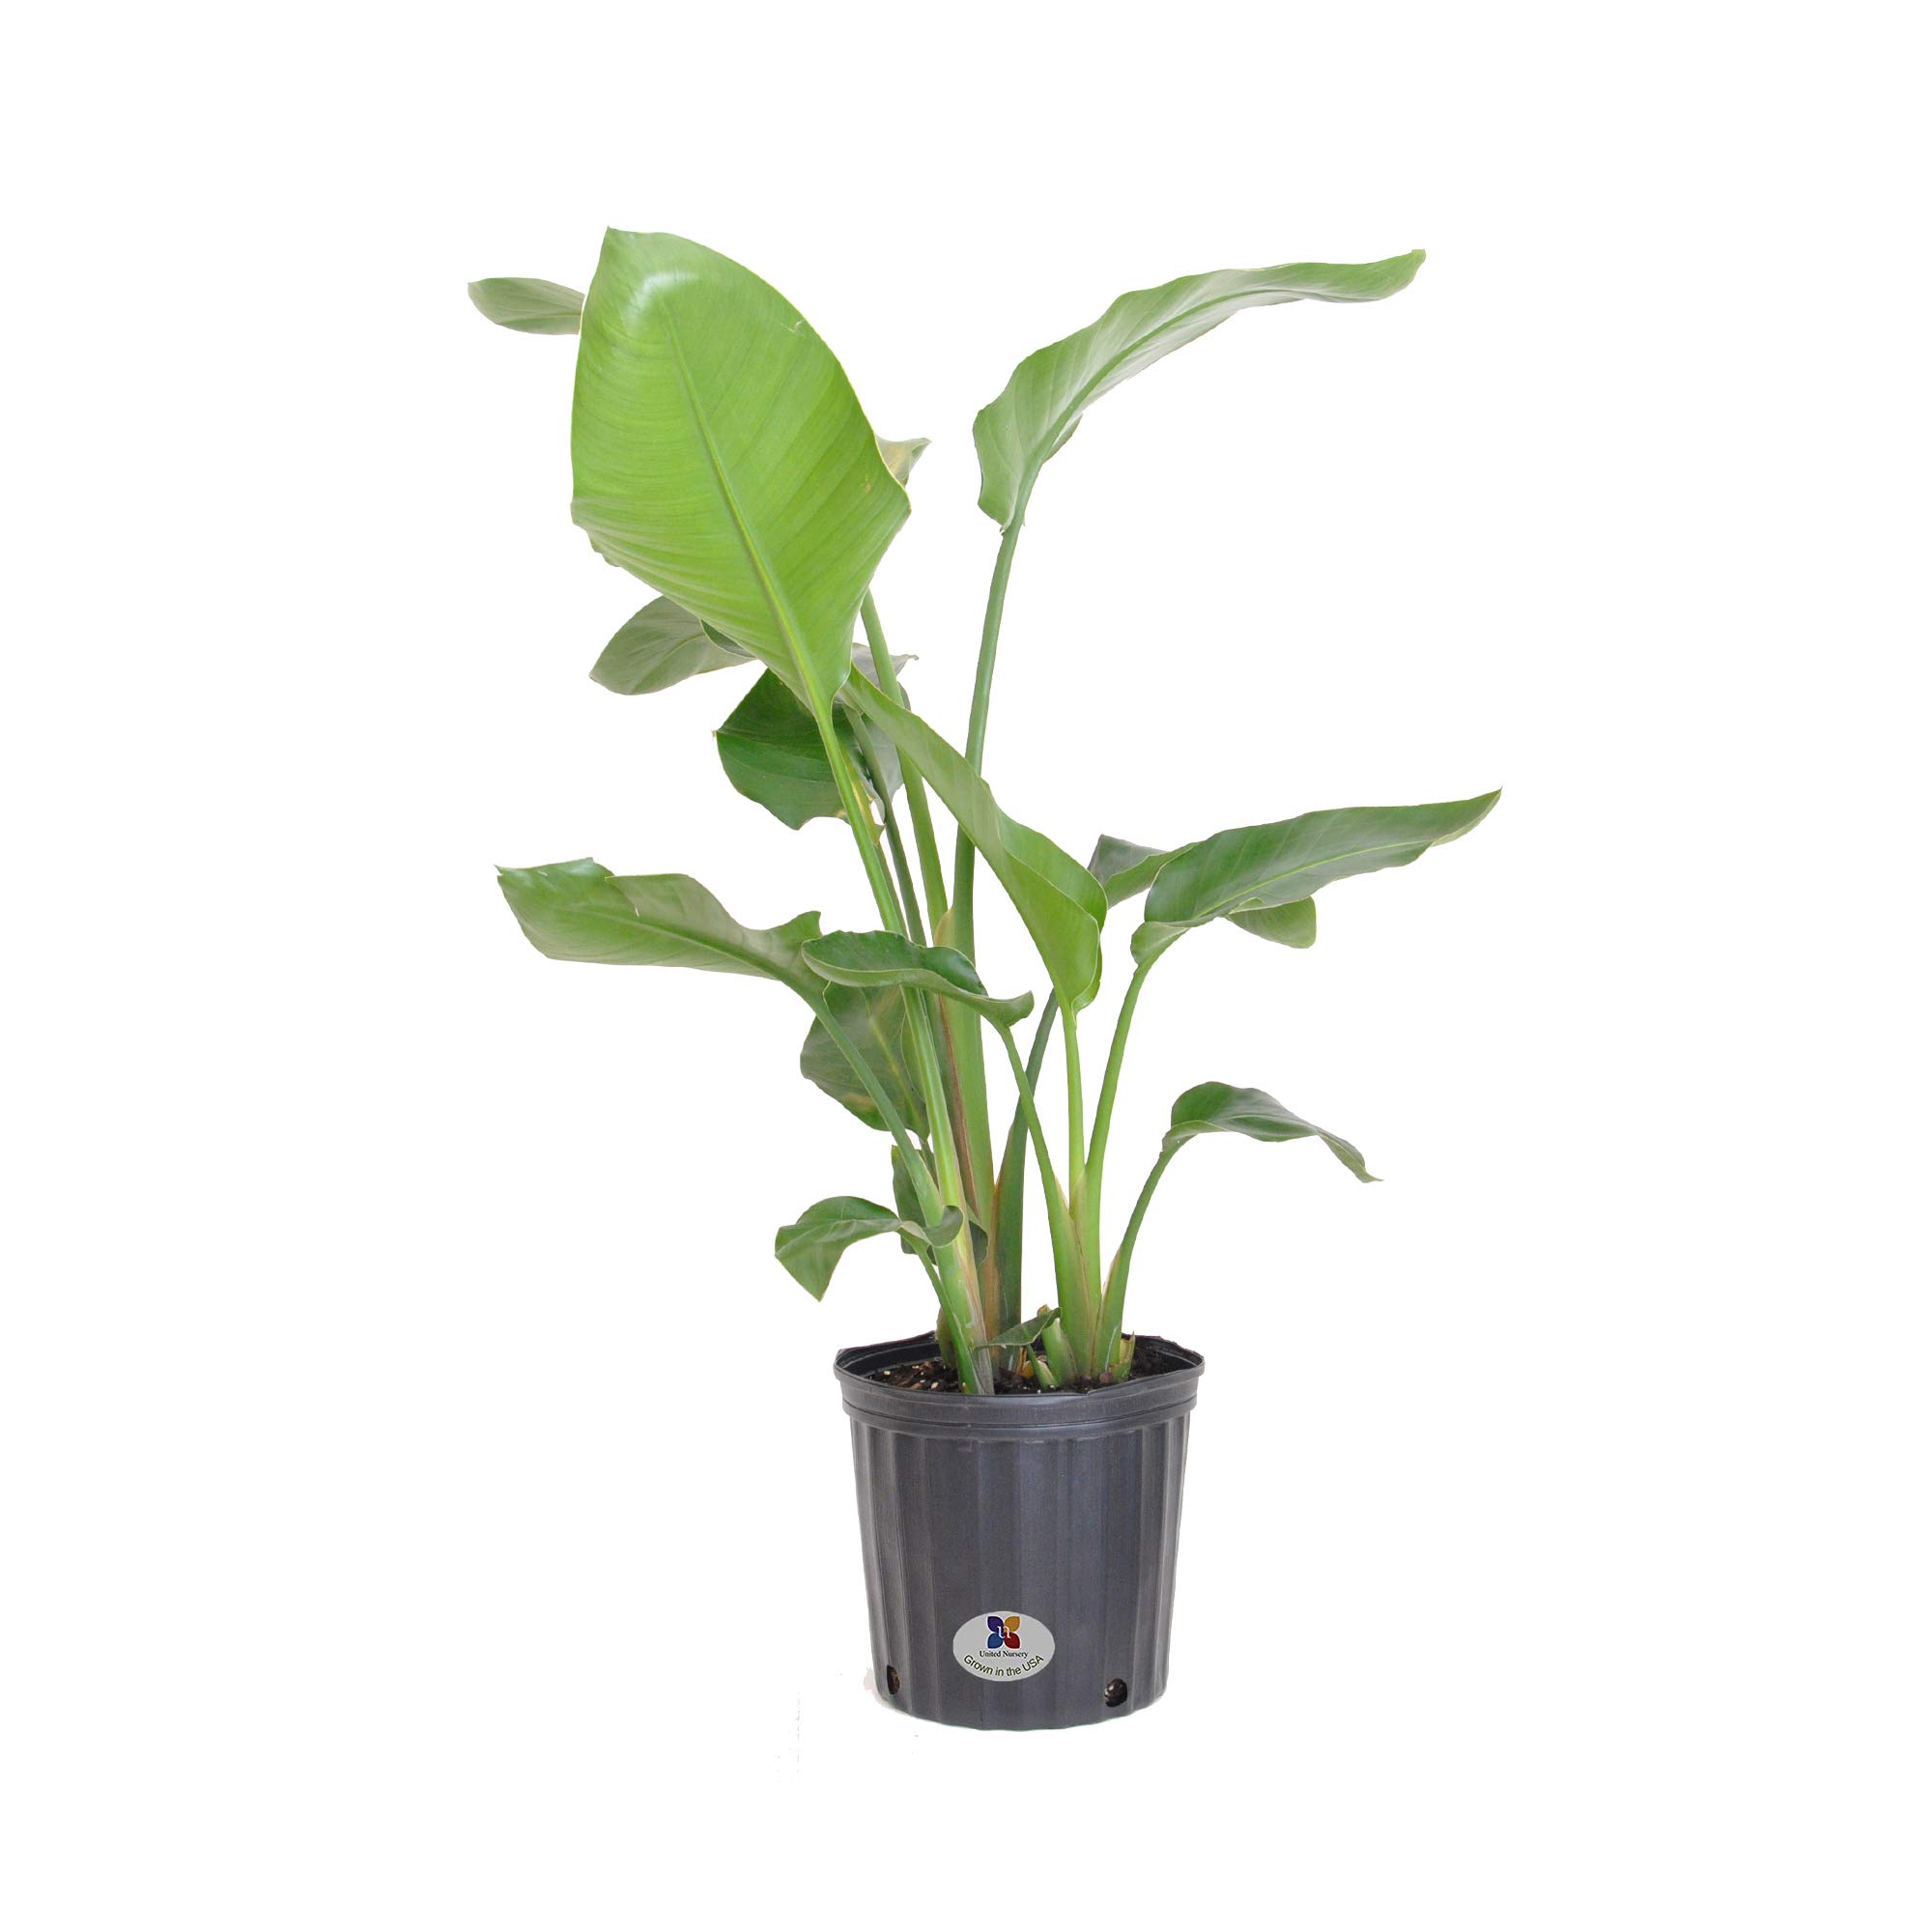 United Nursery White Bird of Paradise Live Indoor Strelitzia Nicolai Plant Shipped in 9.25 inch Grower Pot 30-38 inch Shipping Size (Large) by United Nursery